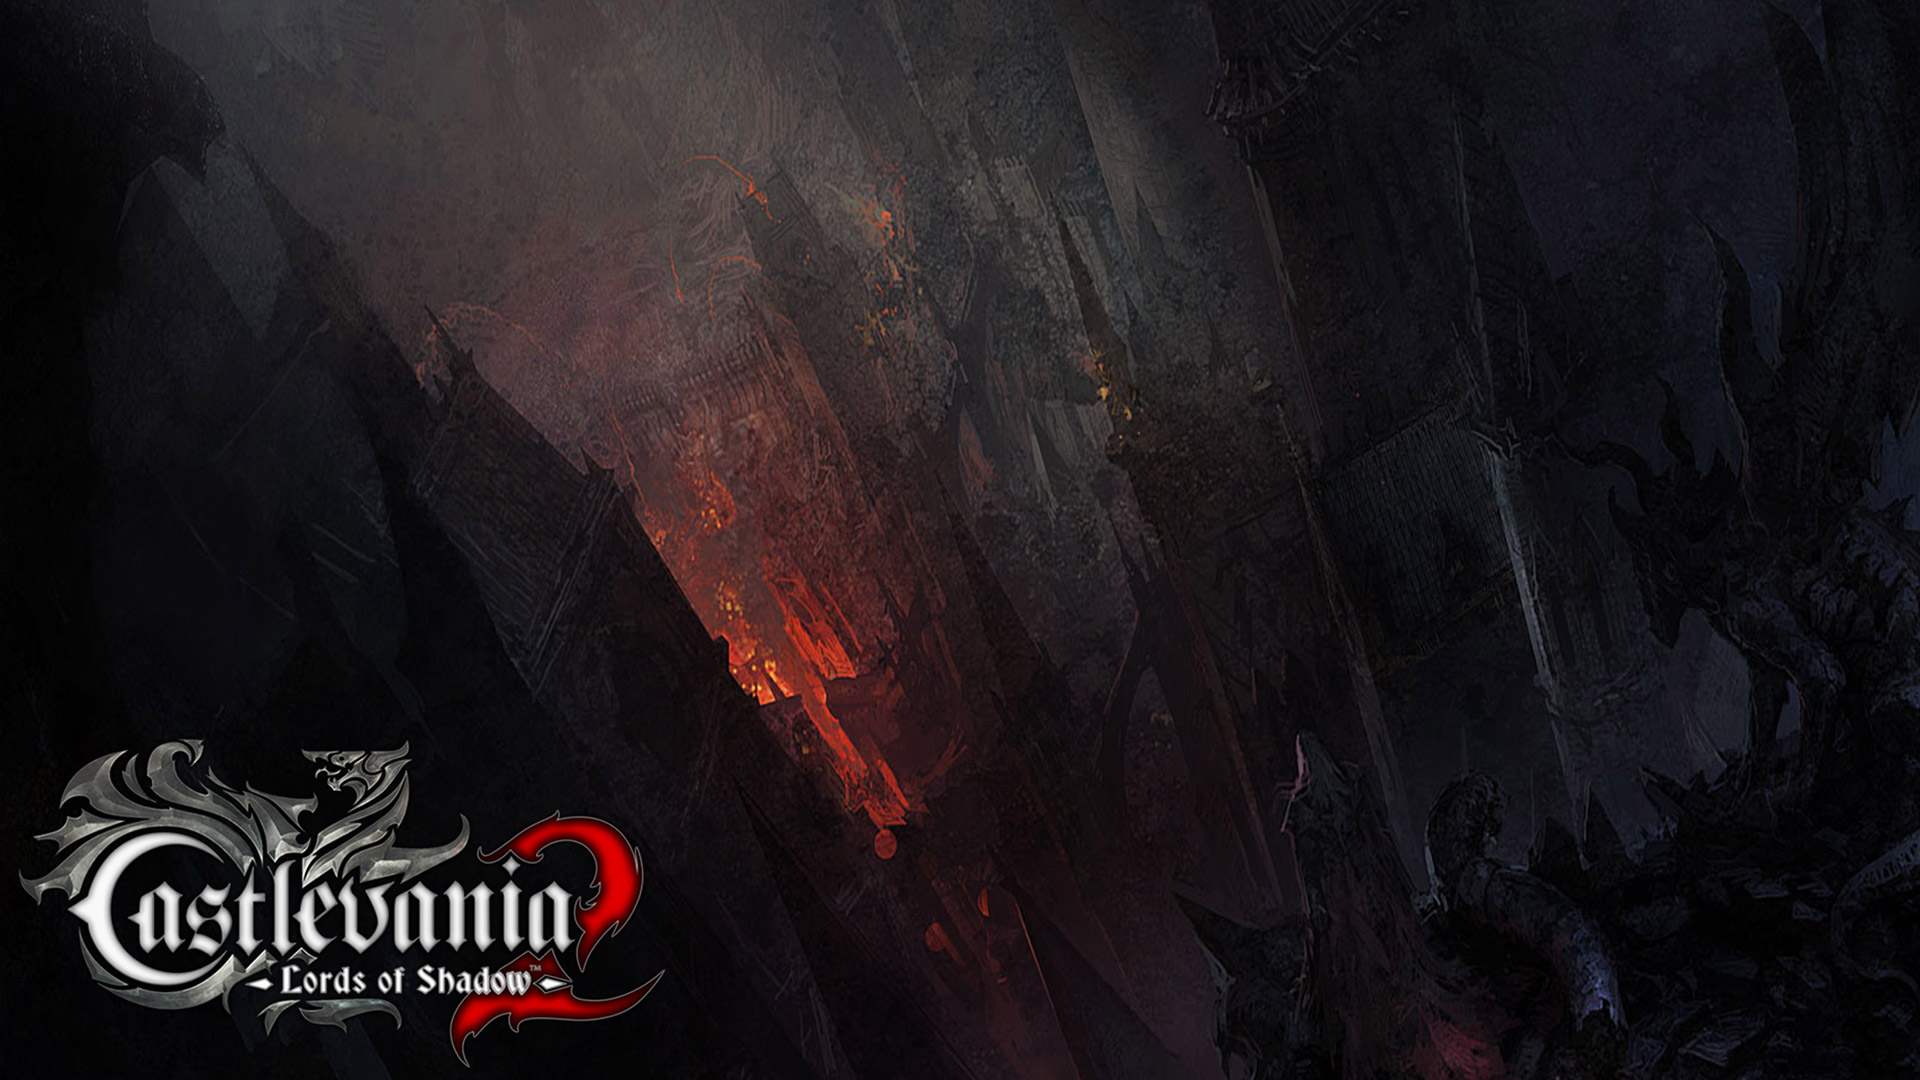 Castlevania Lords of Shadow 2 wallpaper 4